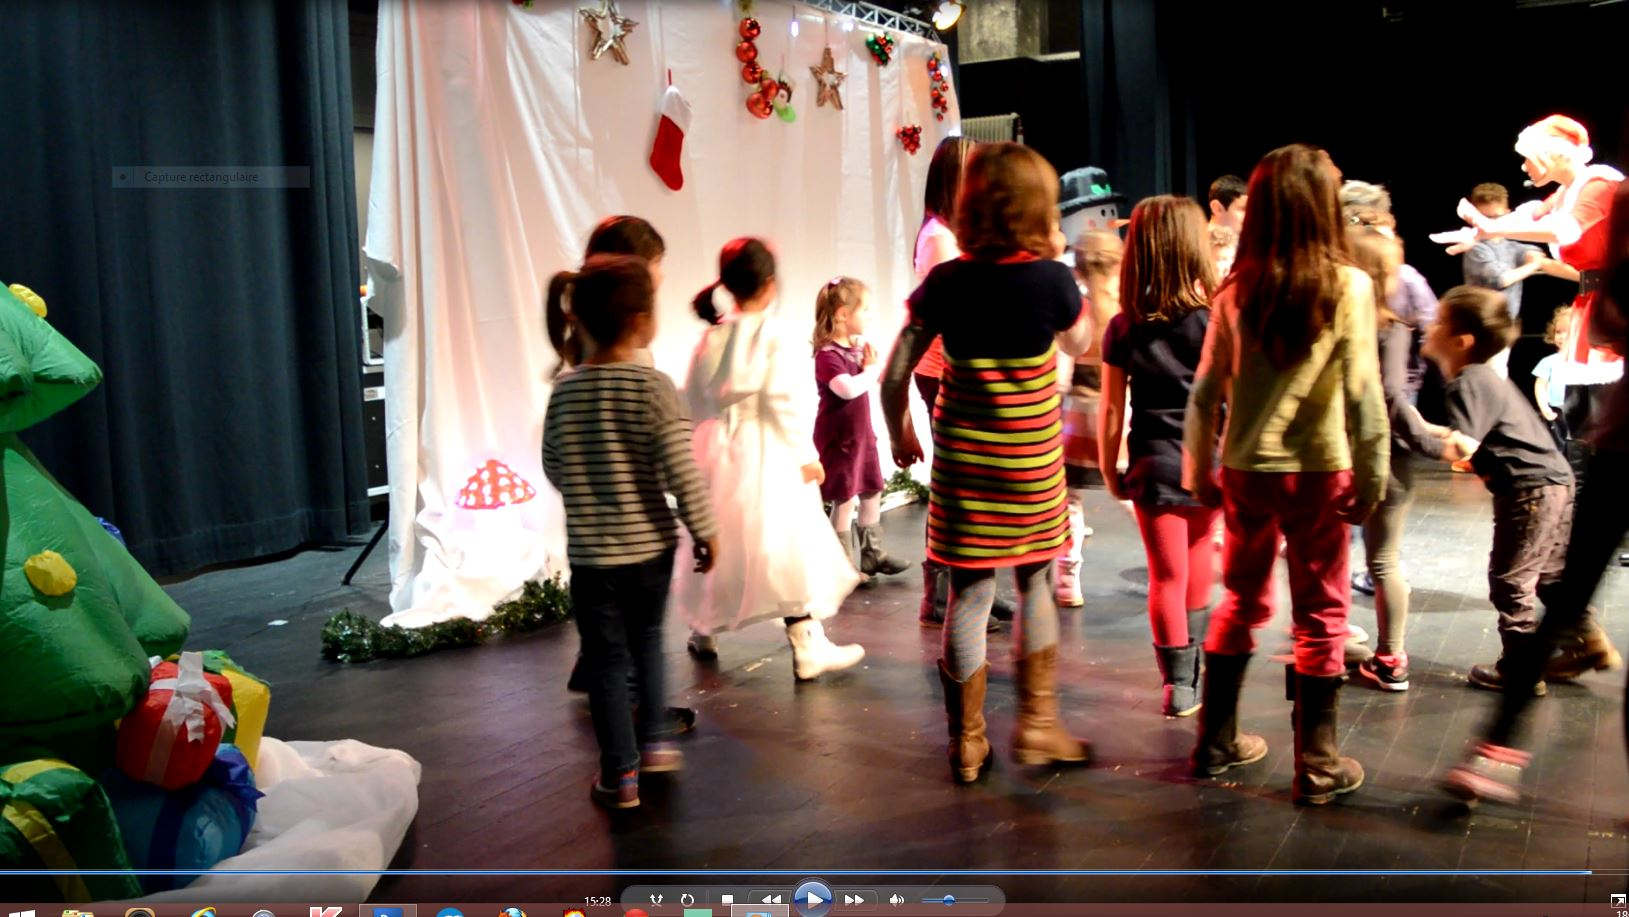 spectacle musical de noel interactif.JPG